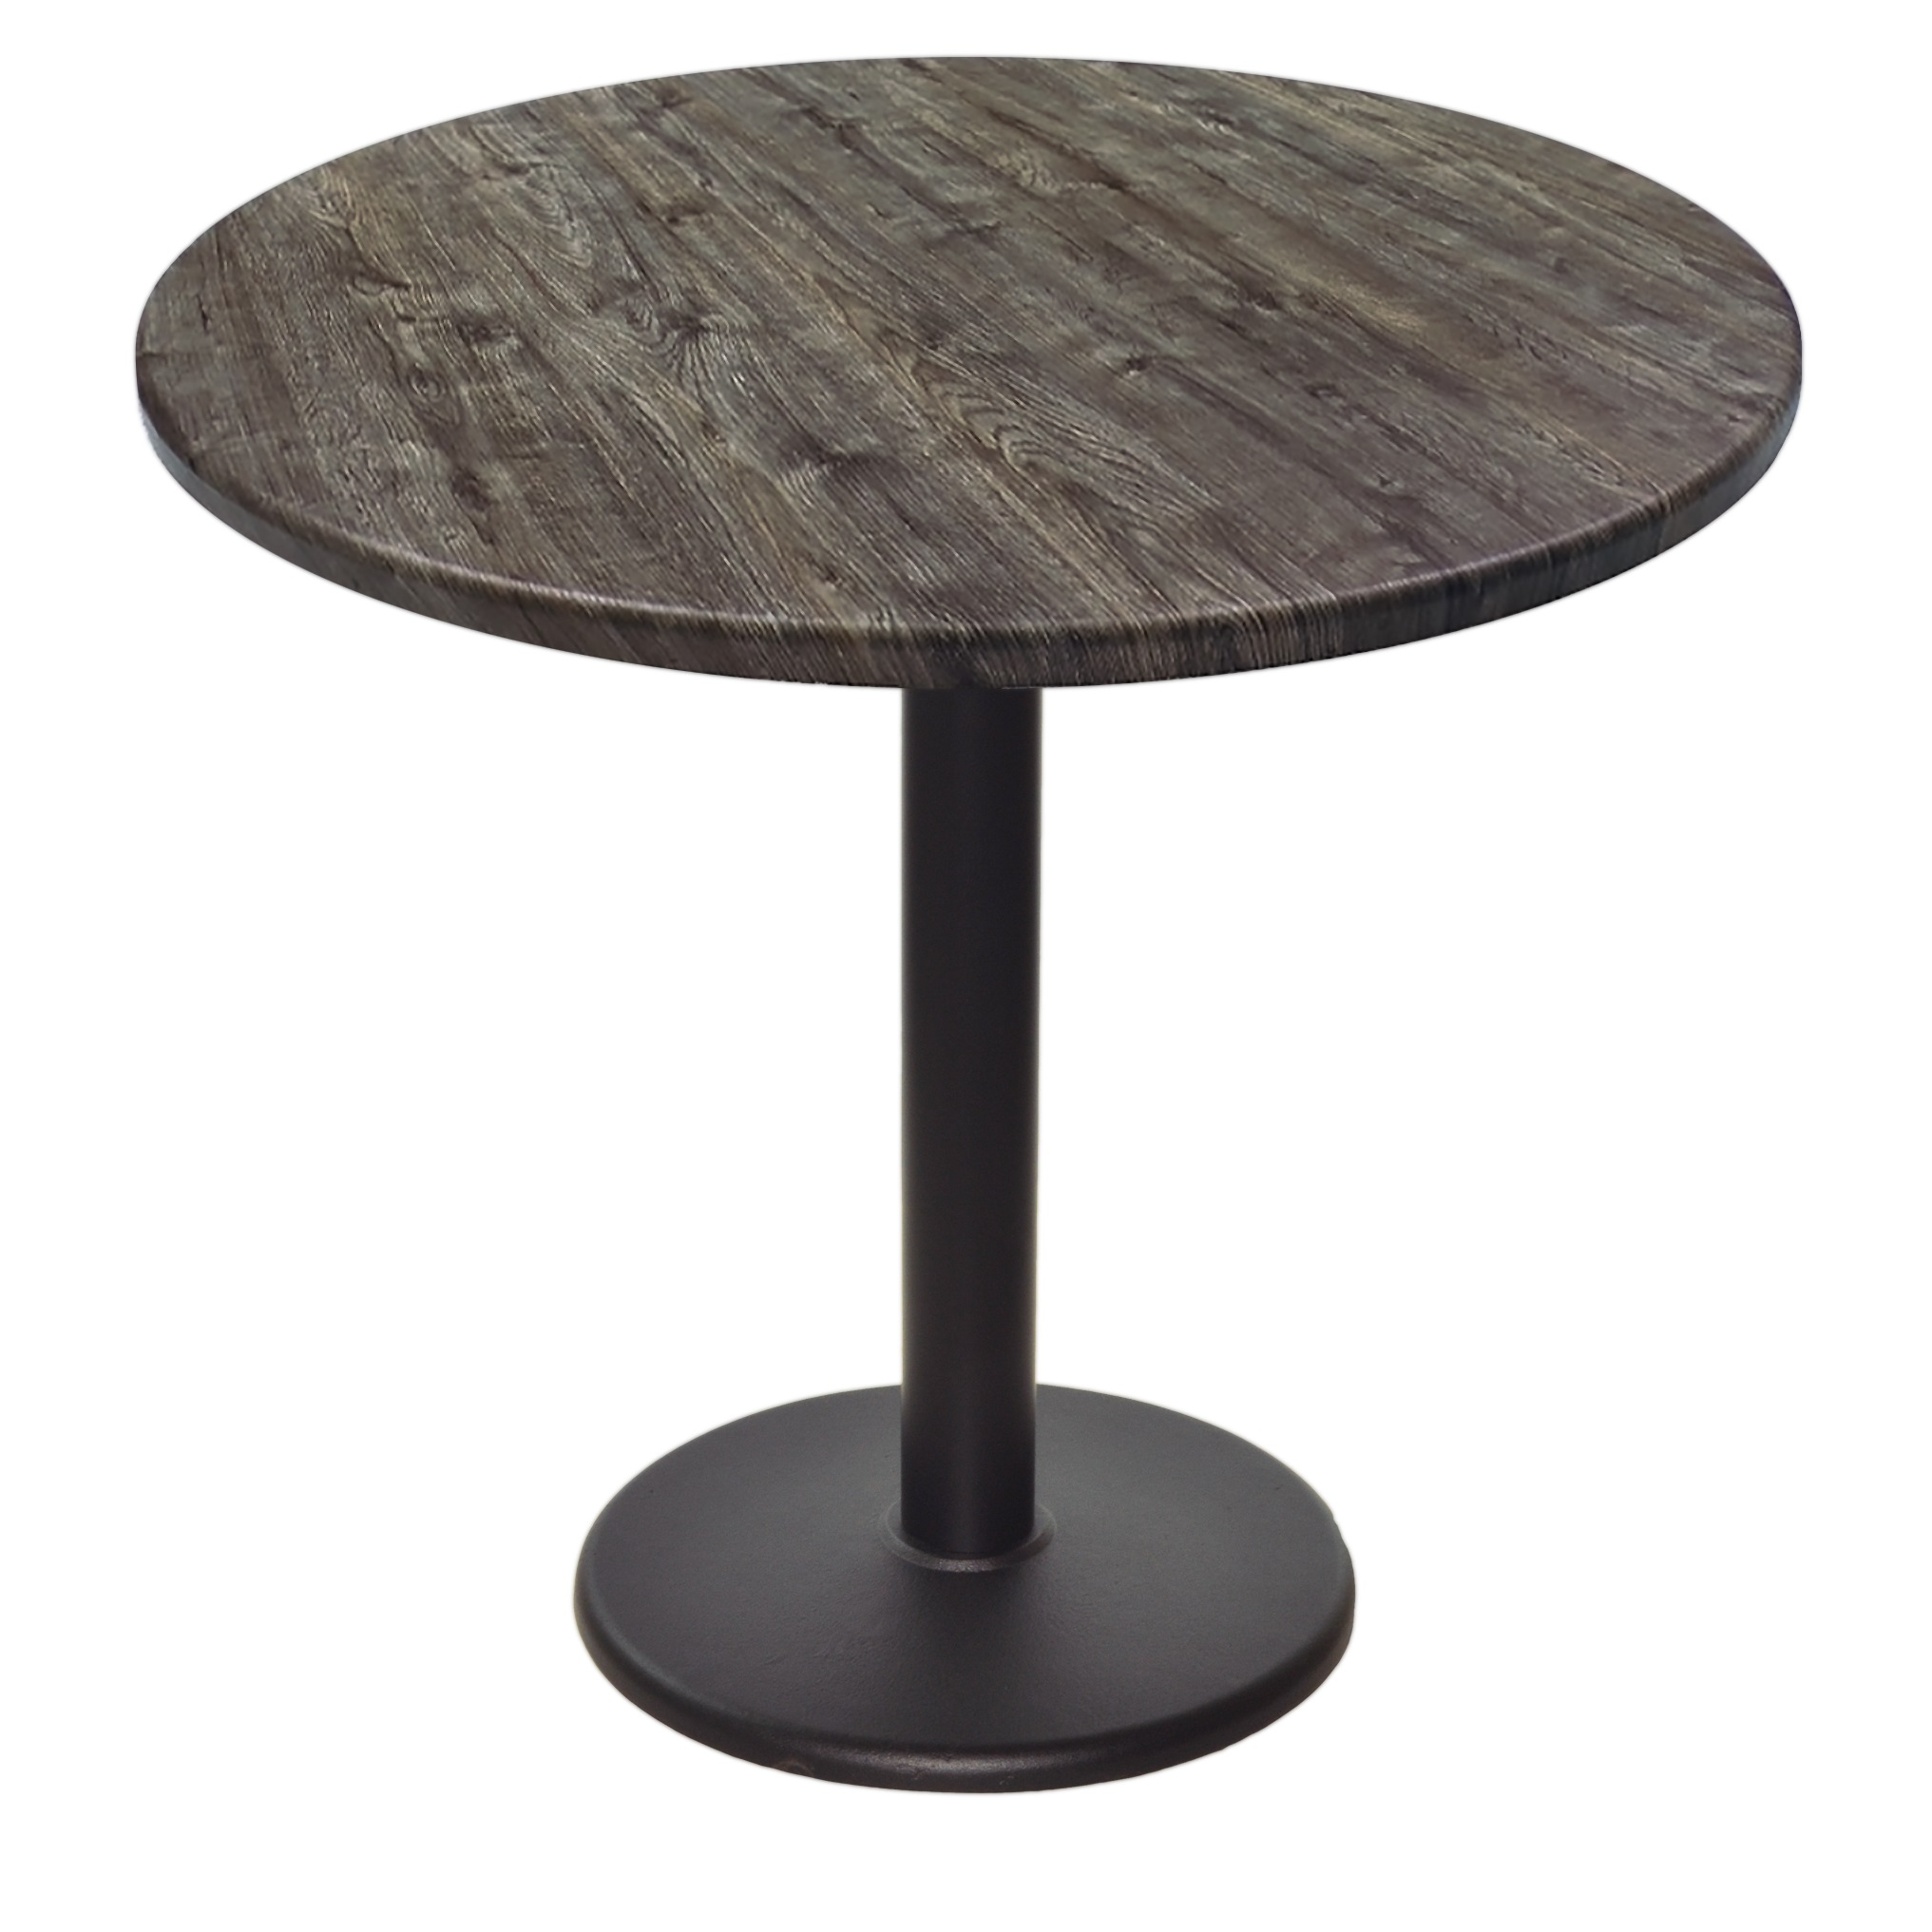 Tables designchoice laminate table top quickship for Table design 3d